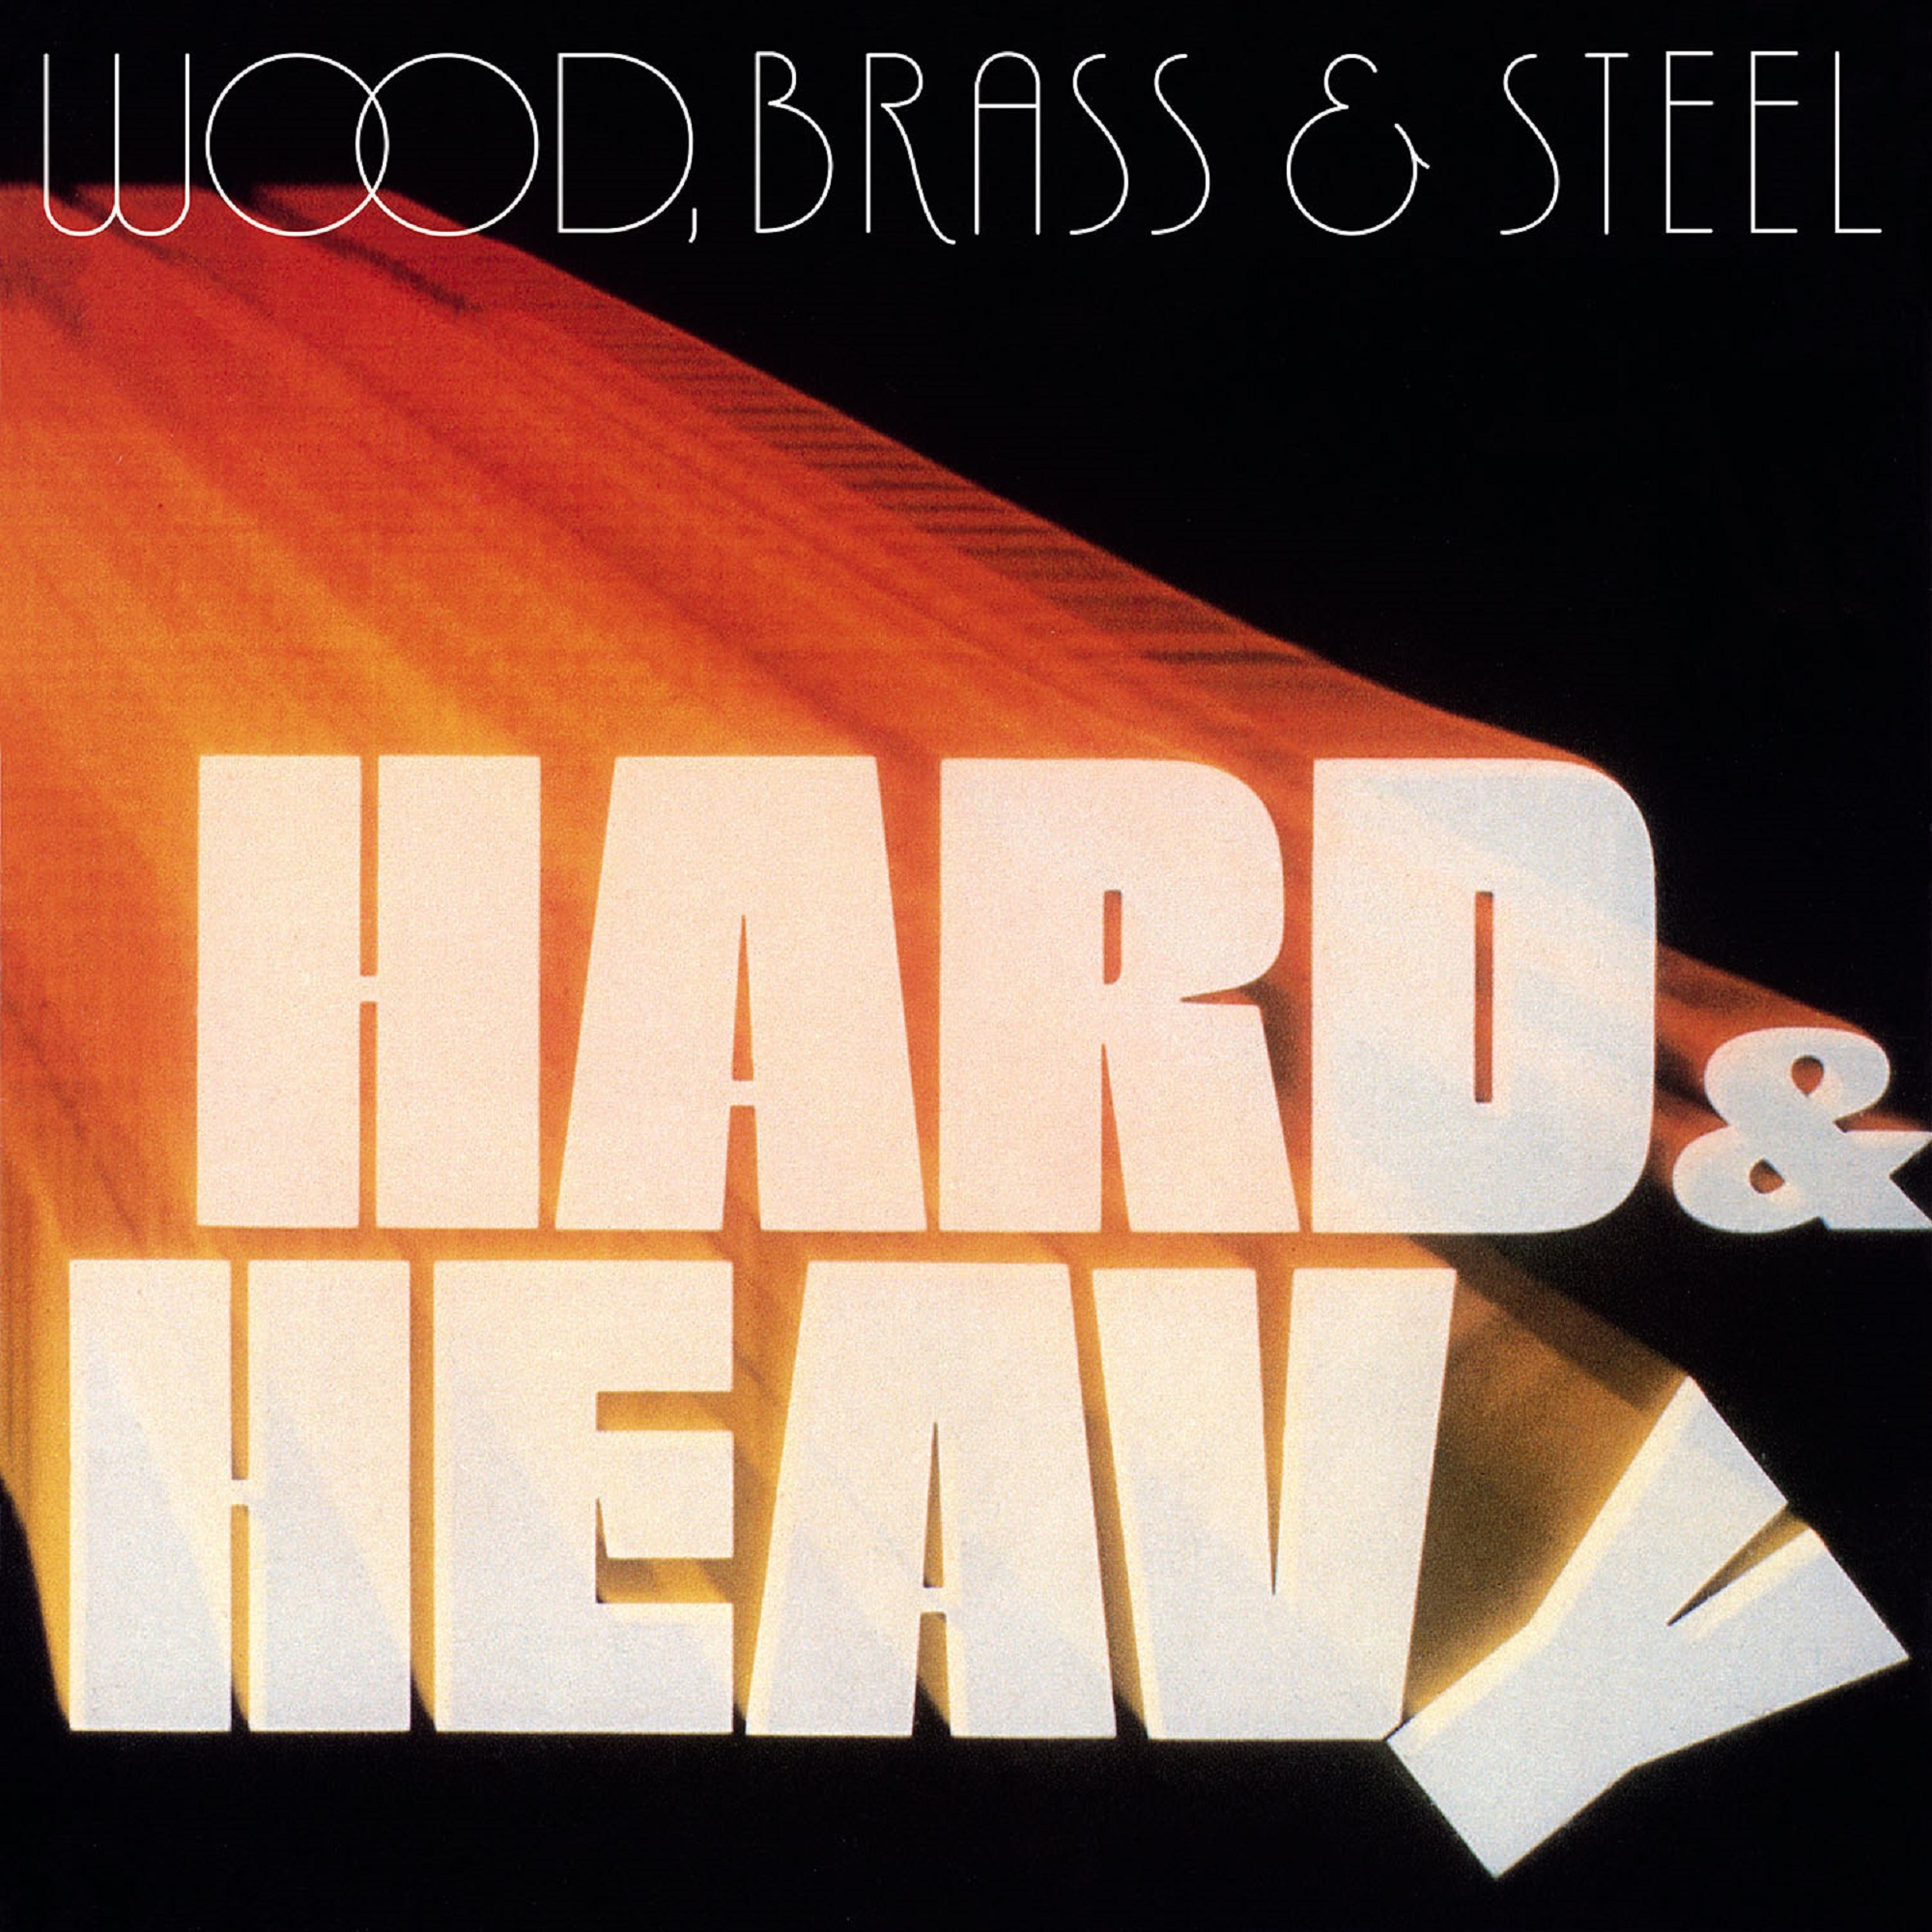 Wood, Brass & Steel/HARD & HEAVY LP